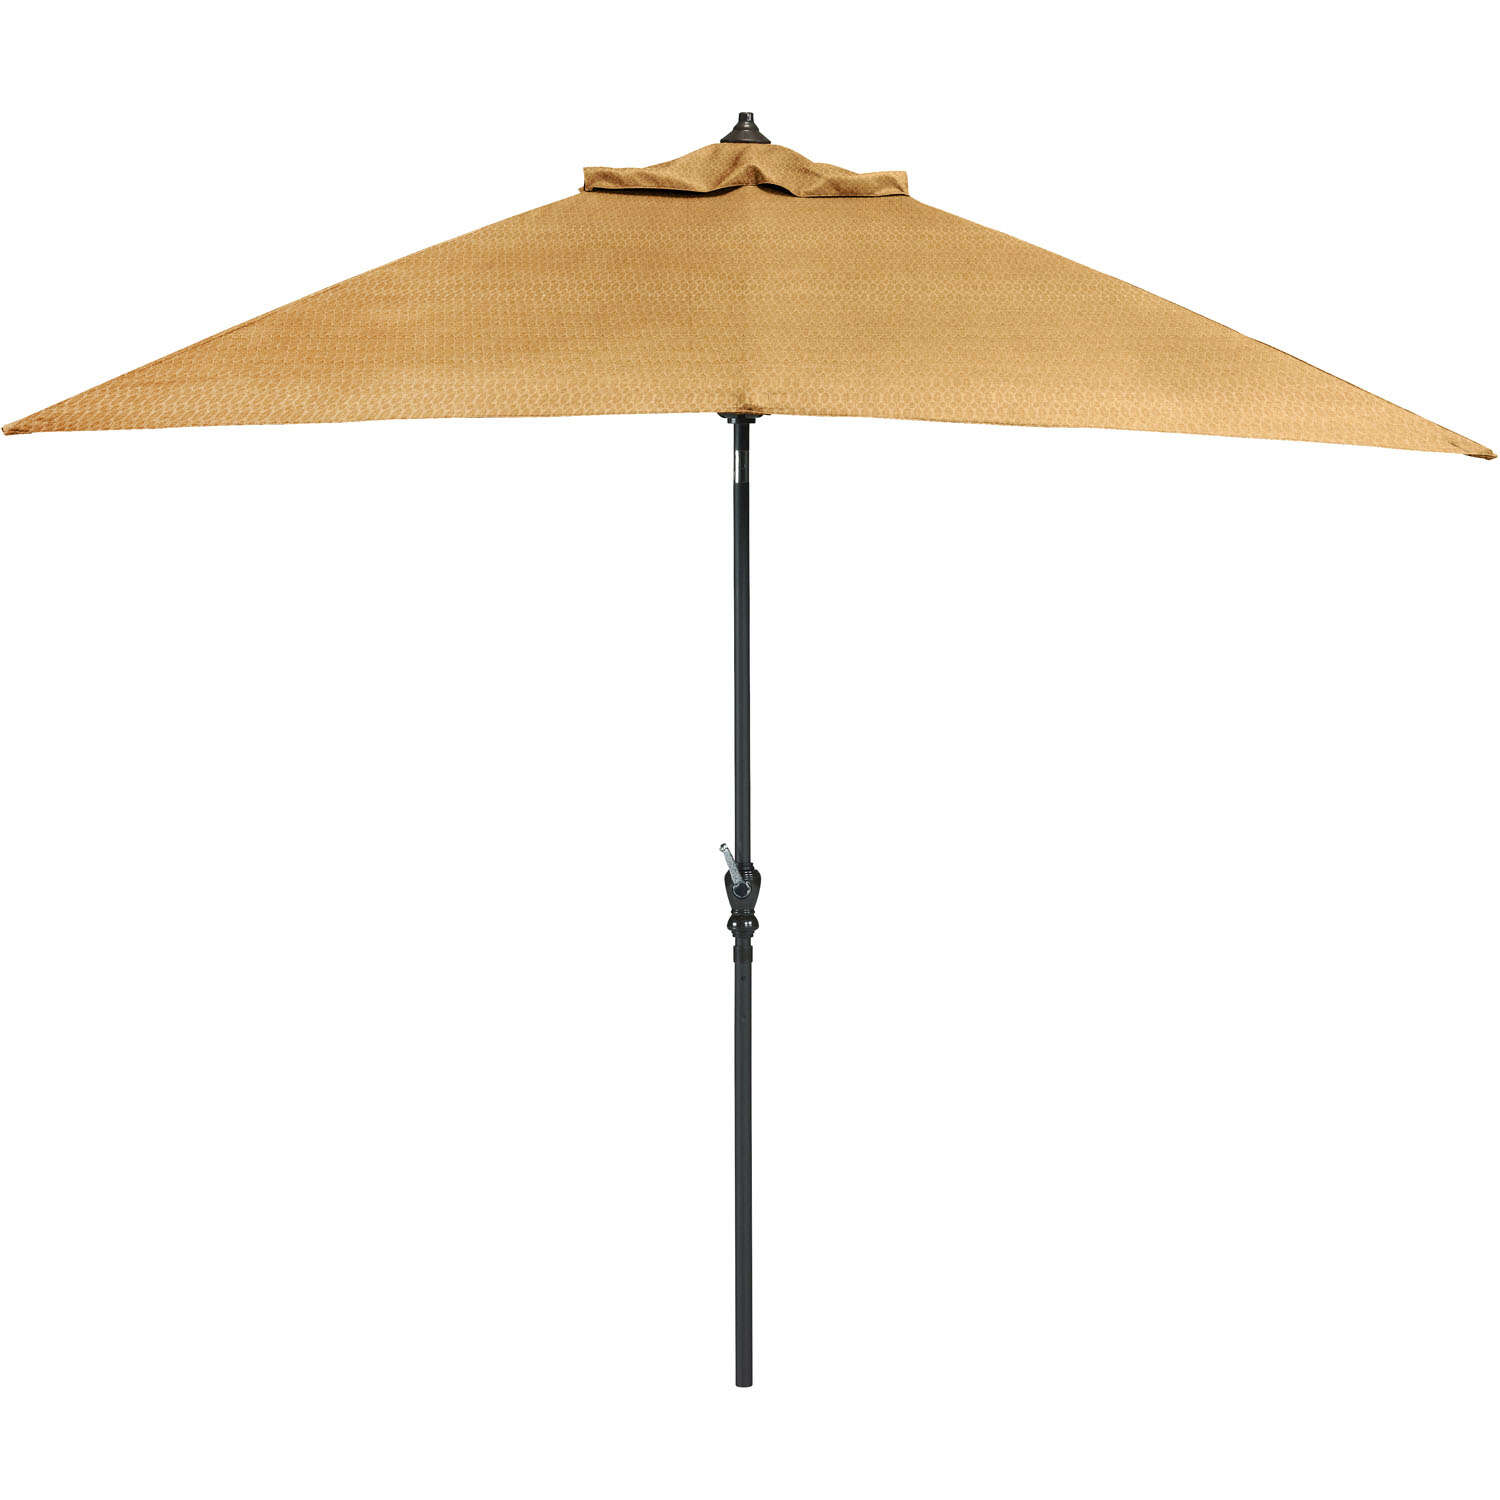 Hanover  Brigantine  120 in. Tiltable Tan  Patio Umbrella